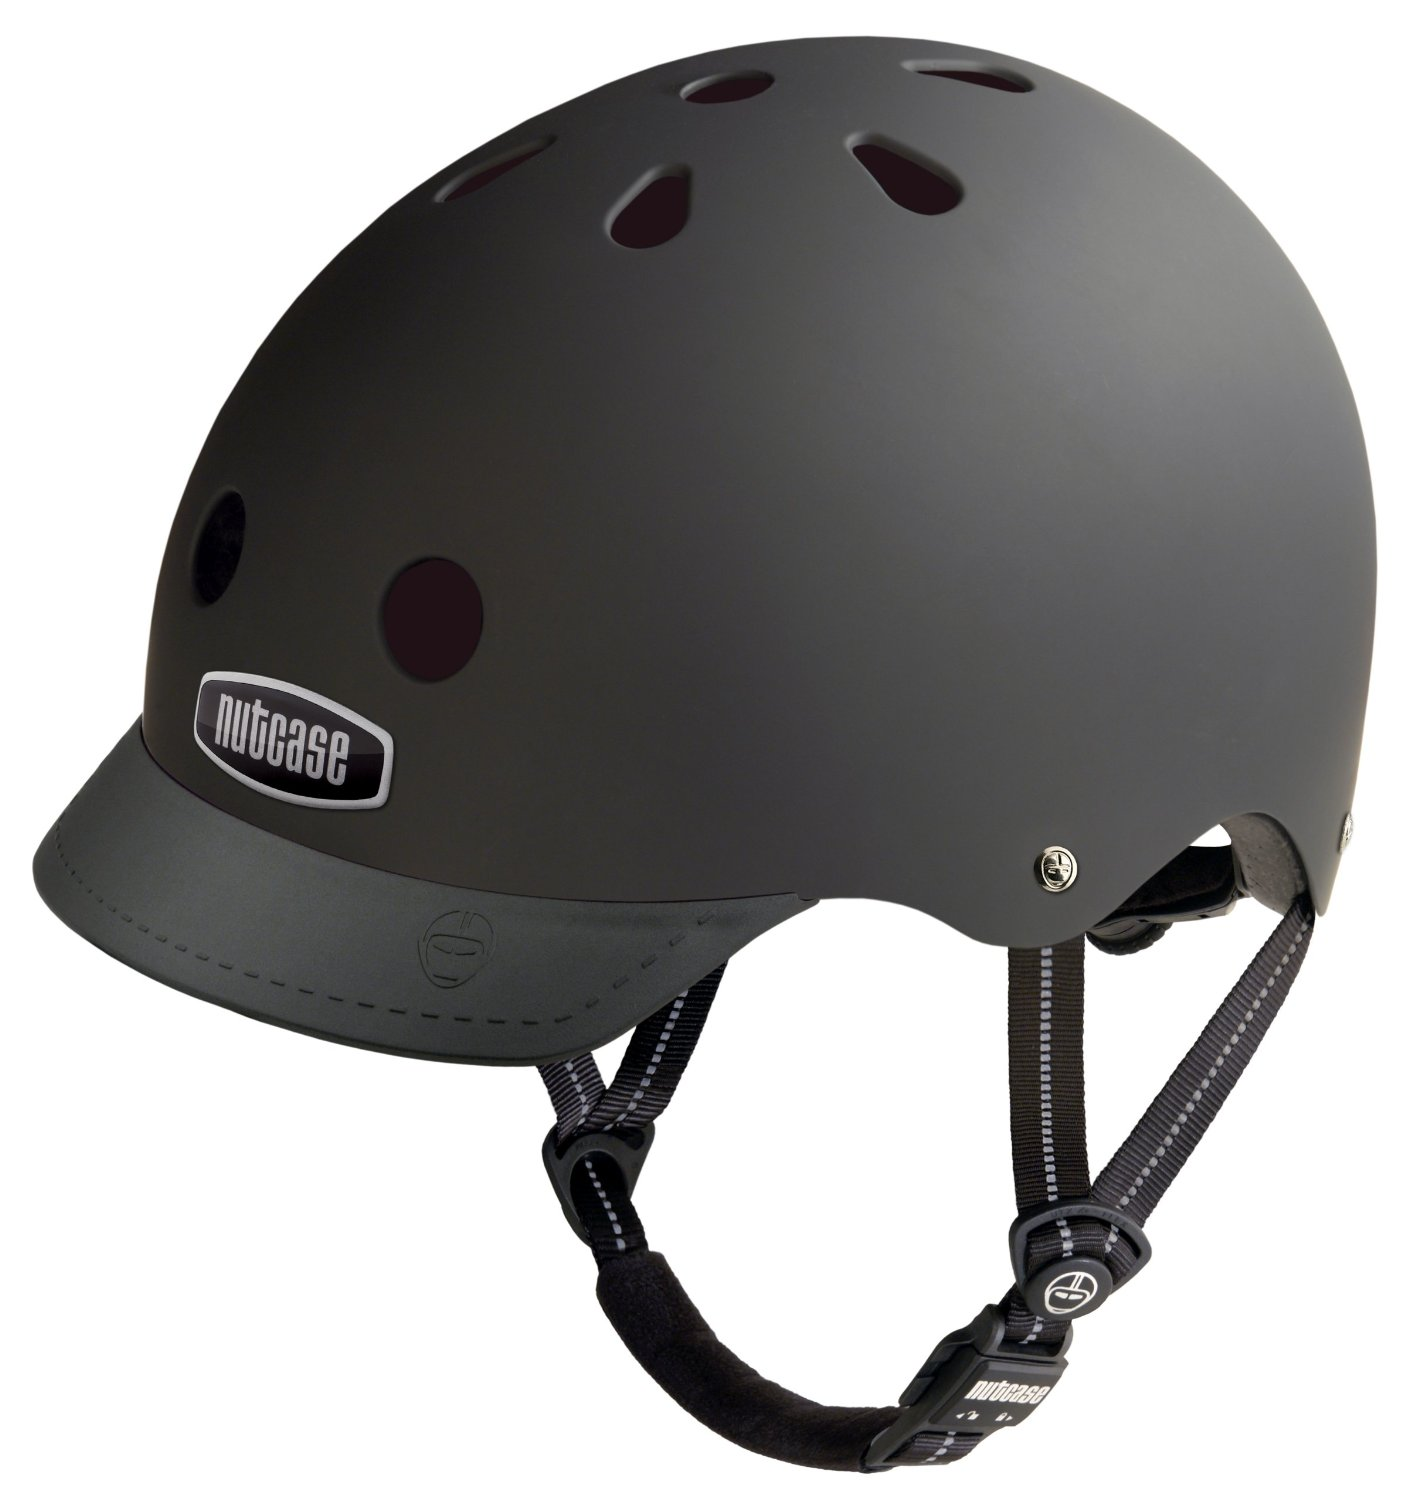 Nutcase Bicycle Helmets